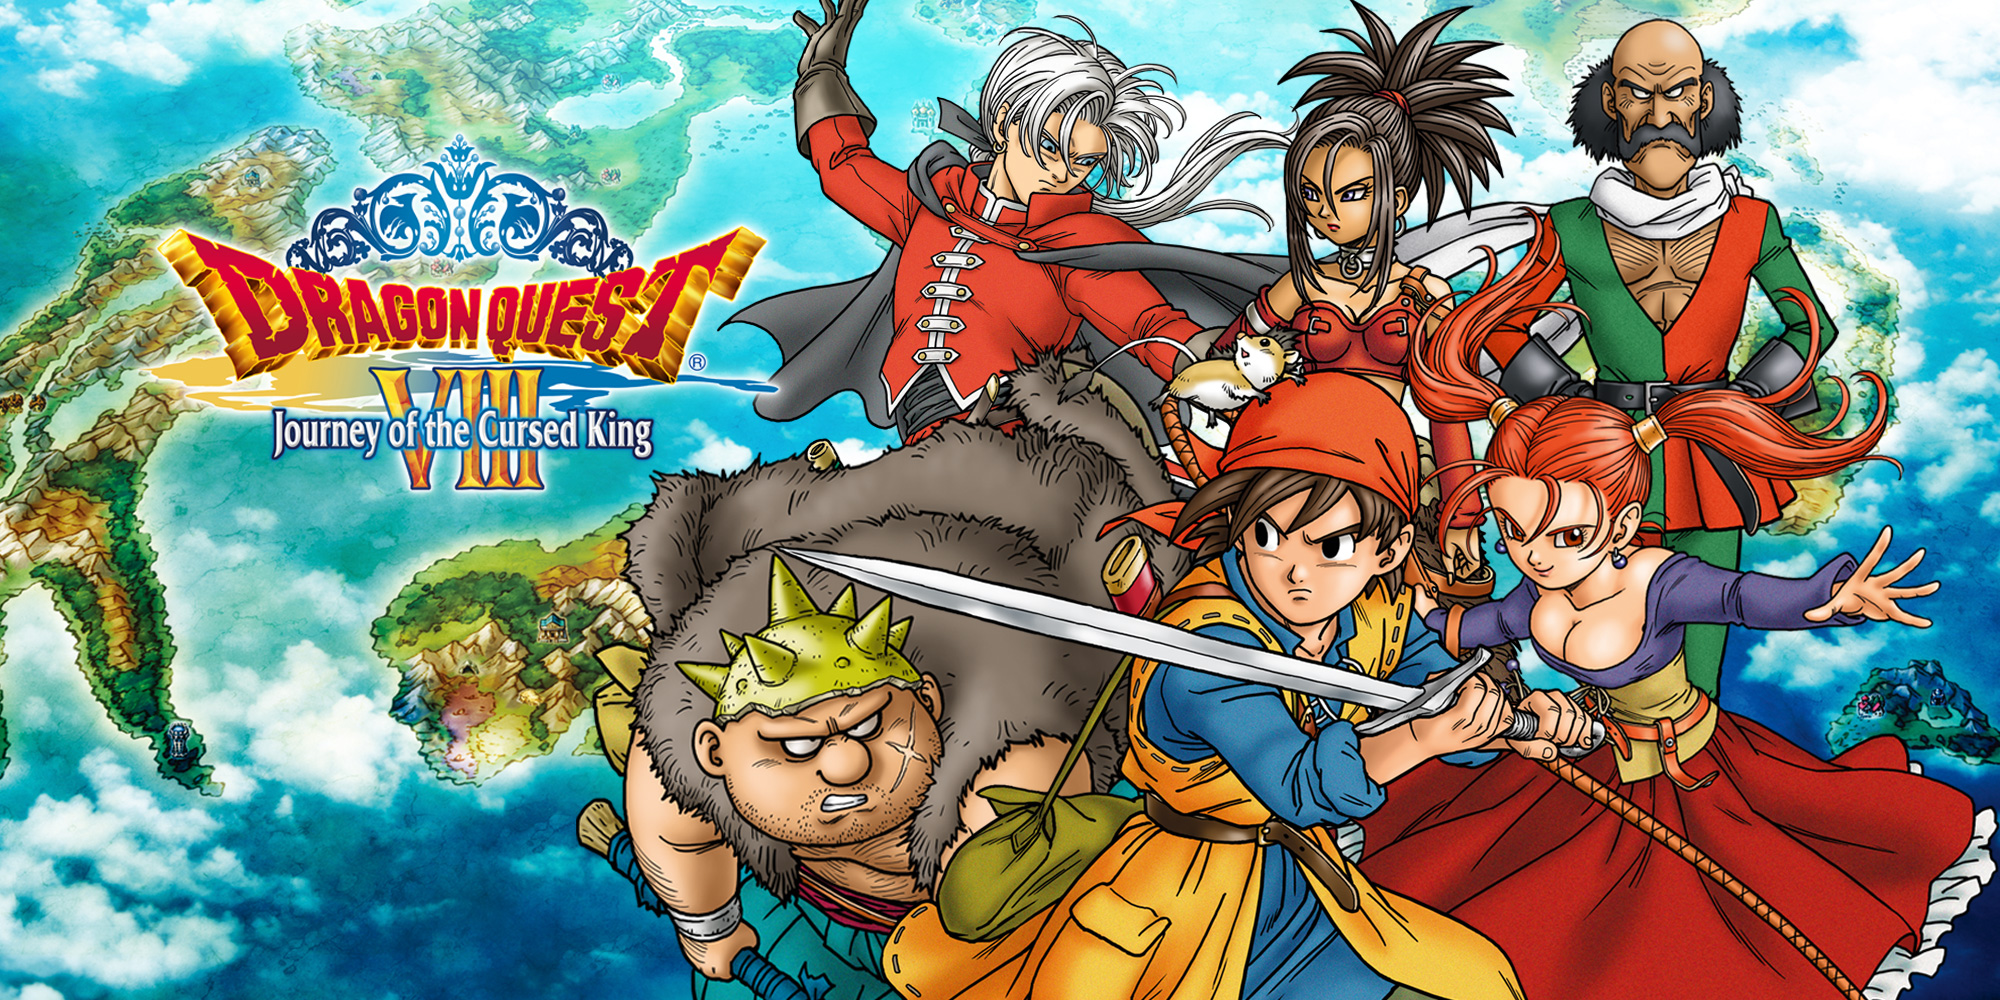 Dragon Quest 7 3ds Fliegender Teppich Dragon Quest Viii Journey Of The Cursed King Nintendo